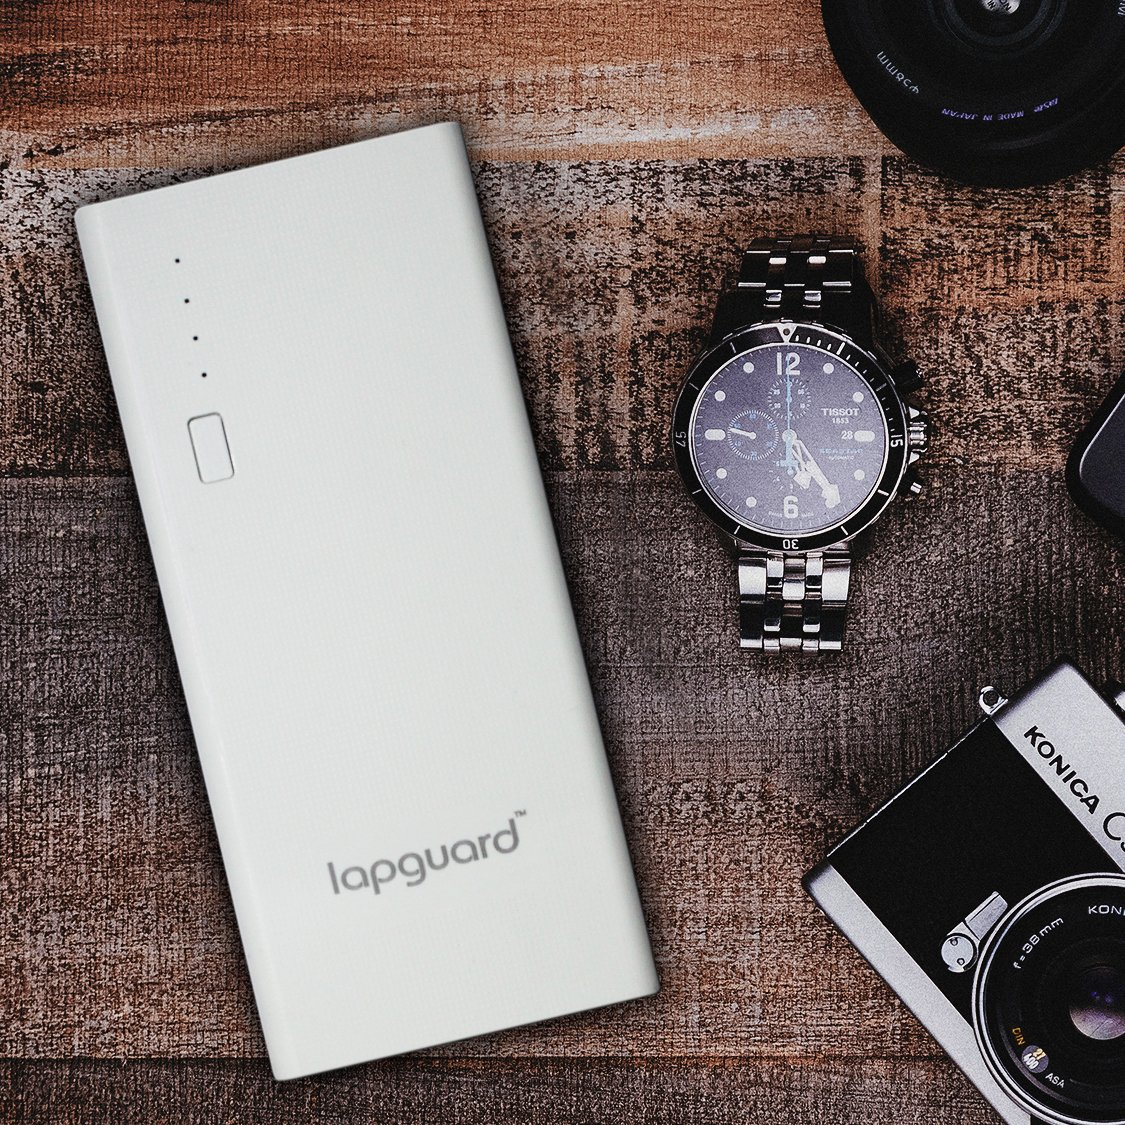 Lapguard 10400 MAh Lithium Ion Power Bank